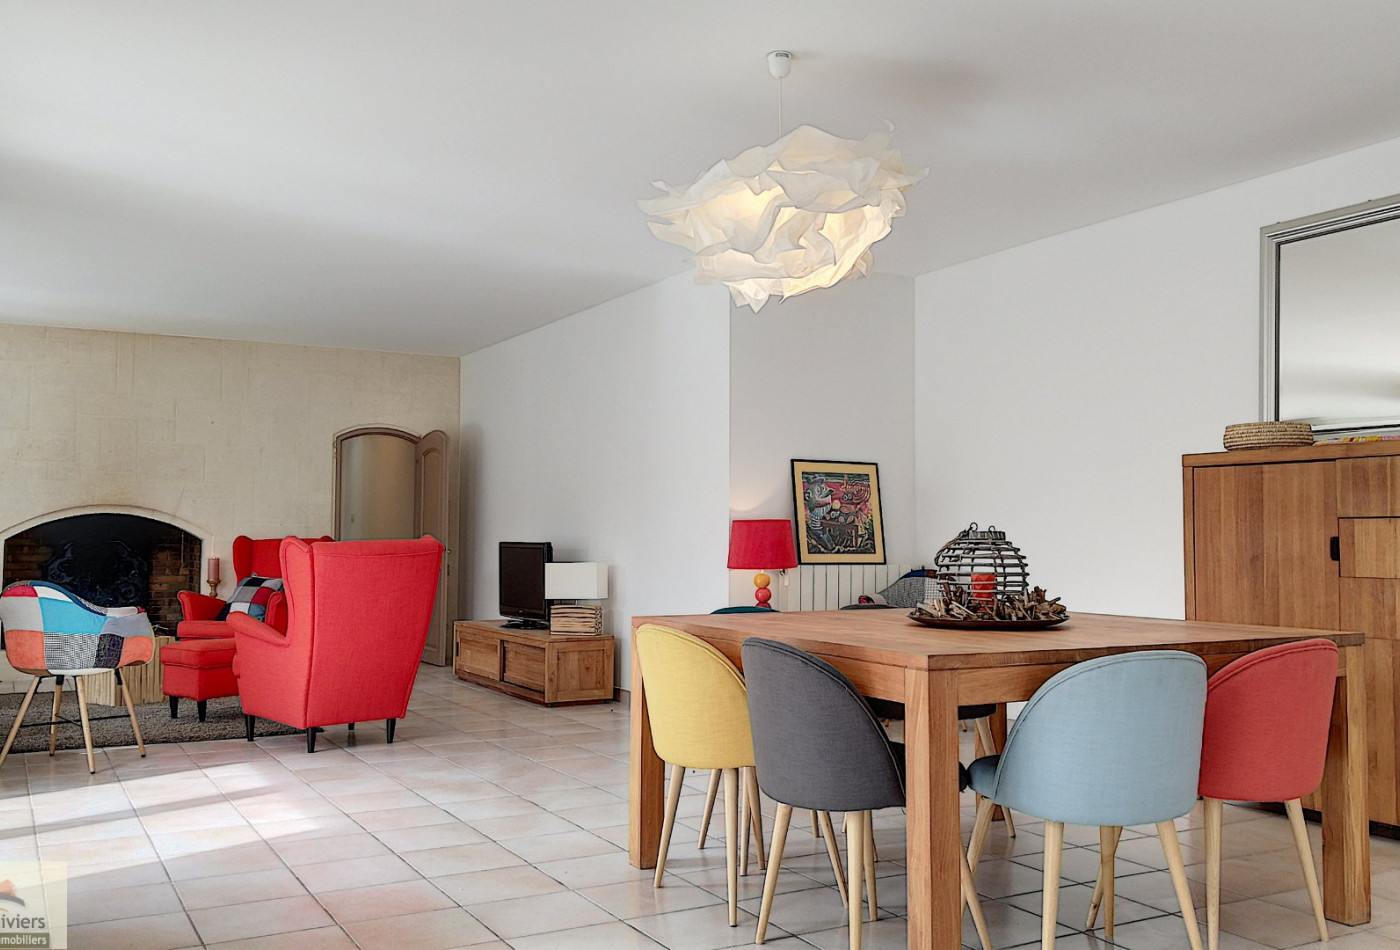 A vendre  Cournonsec   Réf 3407830521 - Agence les oliviers